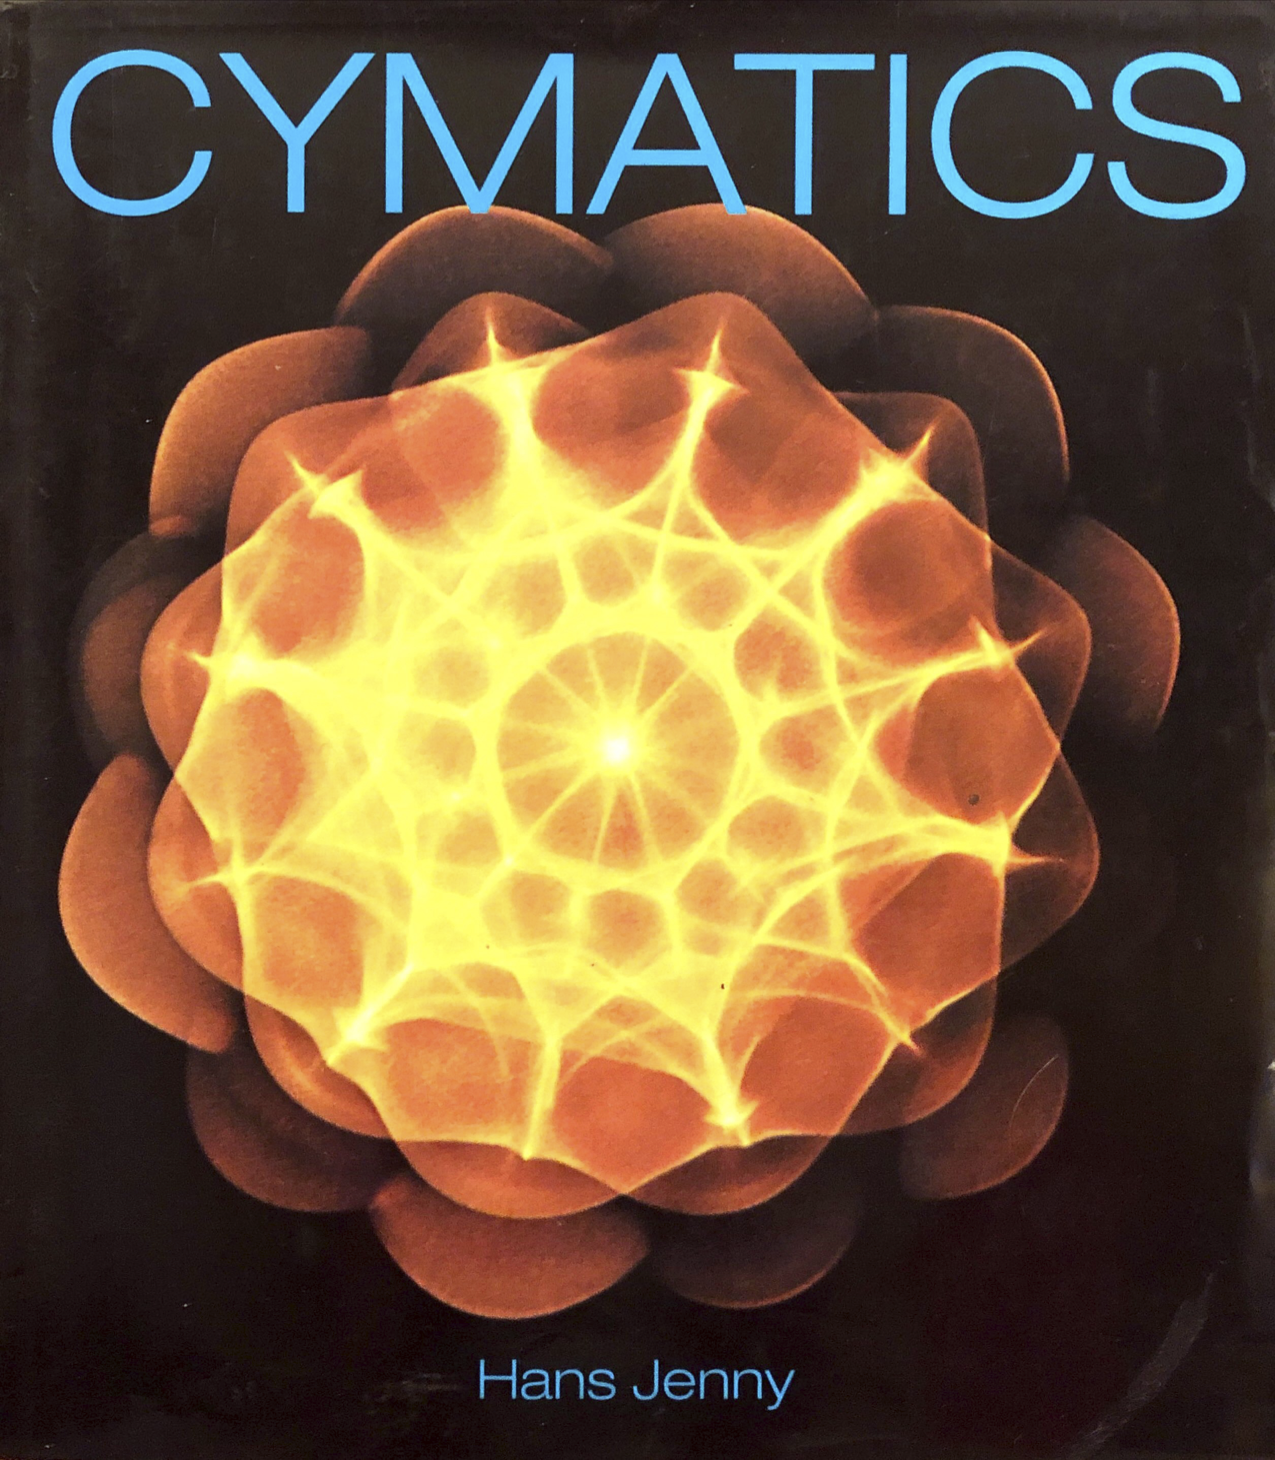 cymatics-cover-w1275-h1460.png